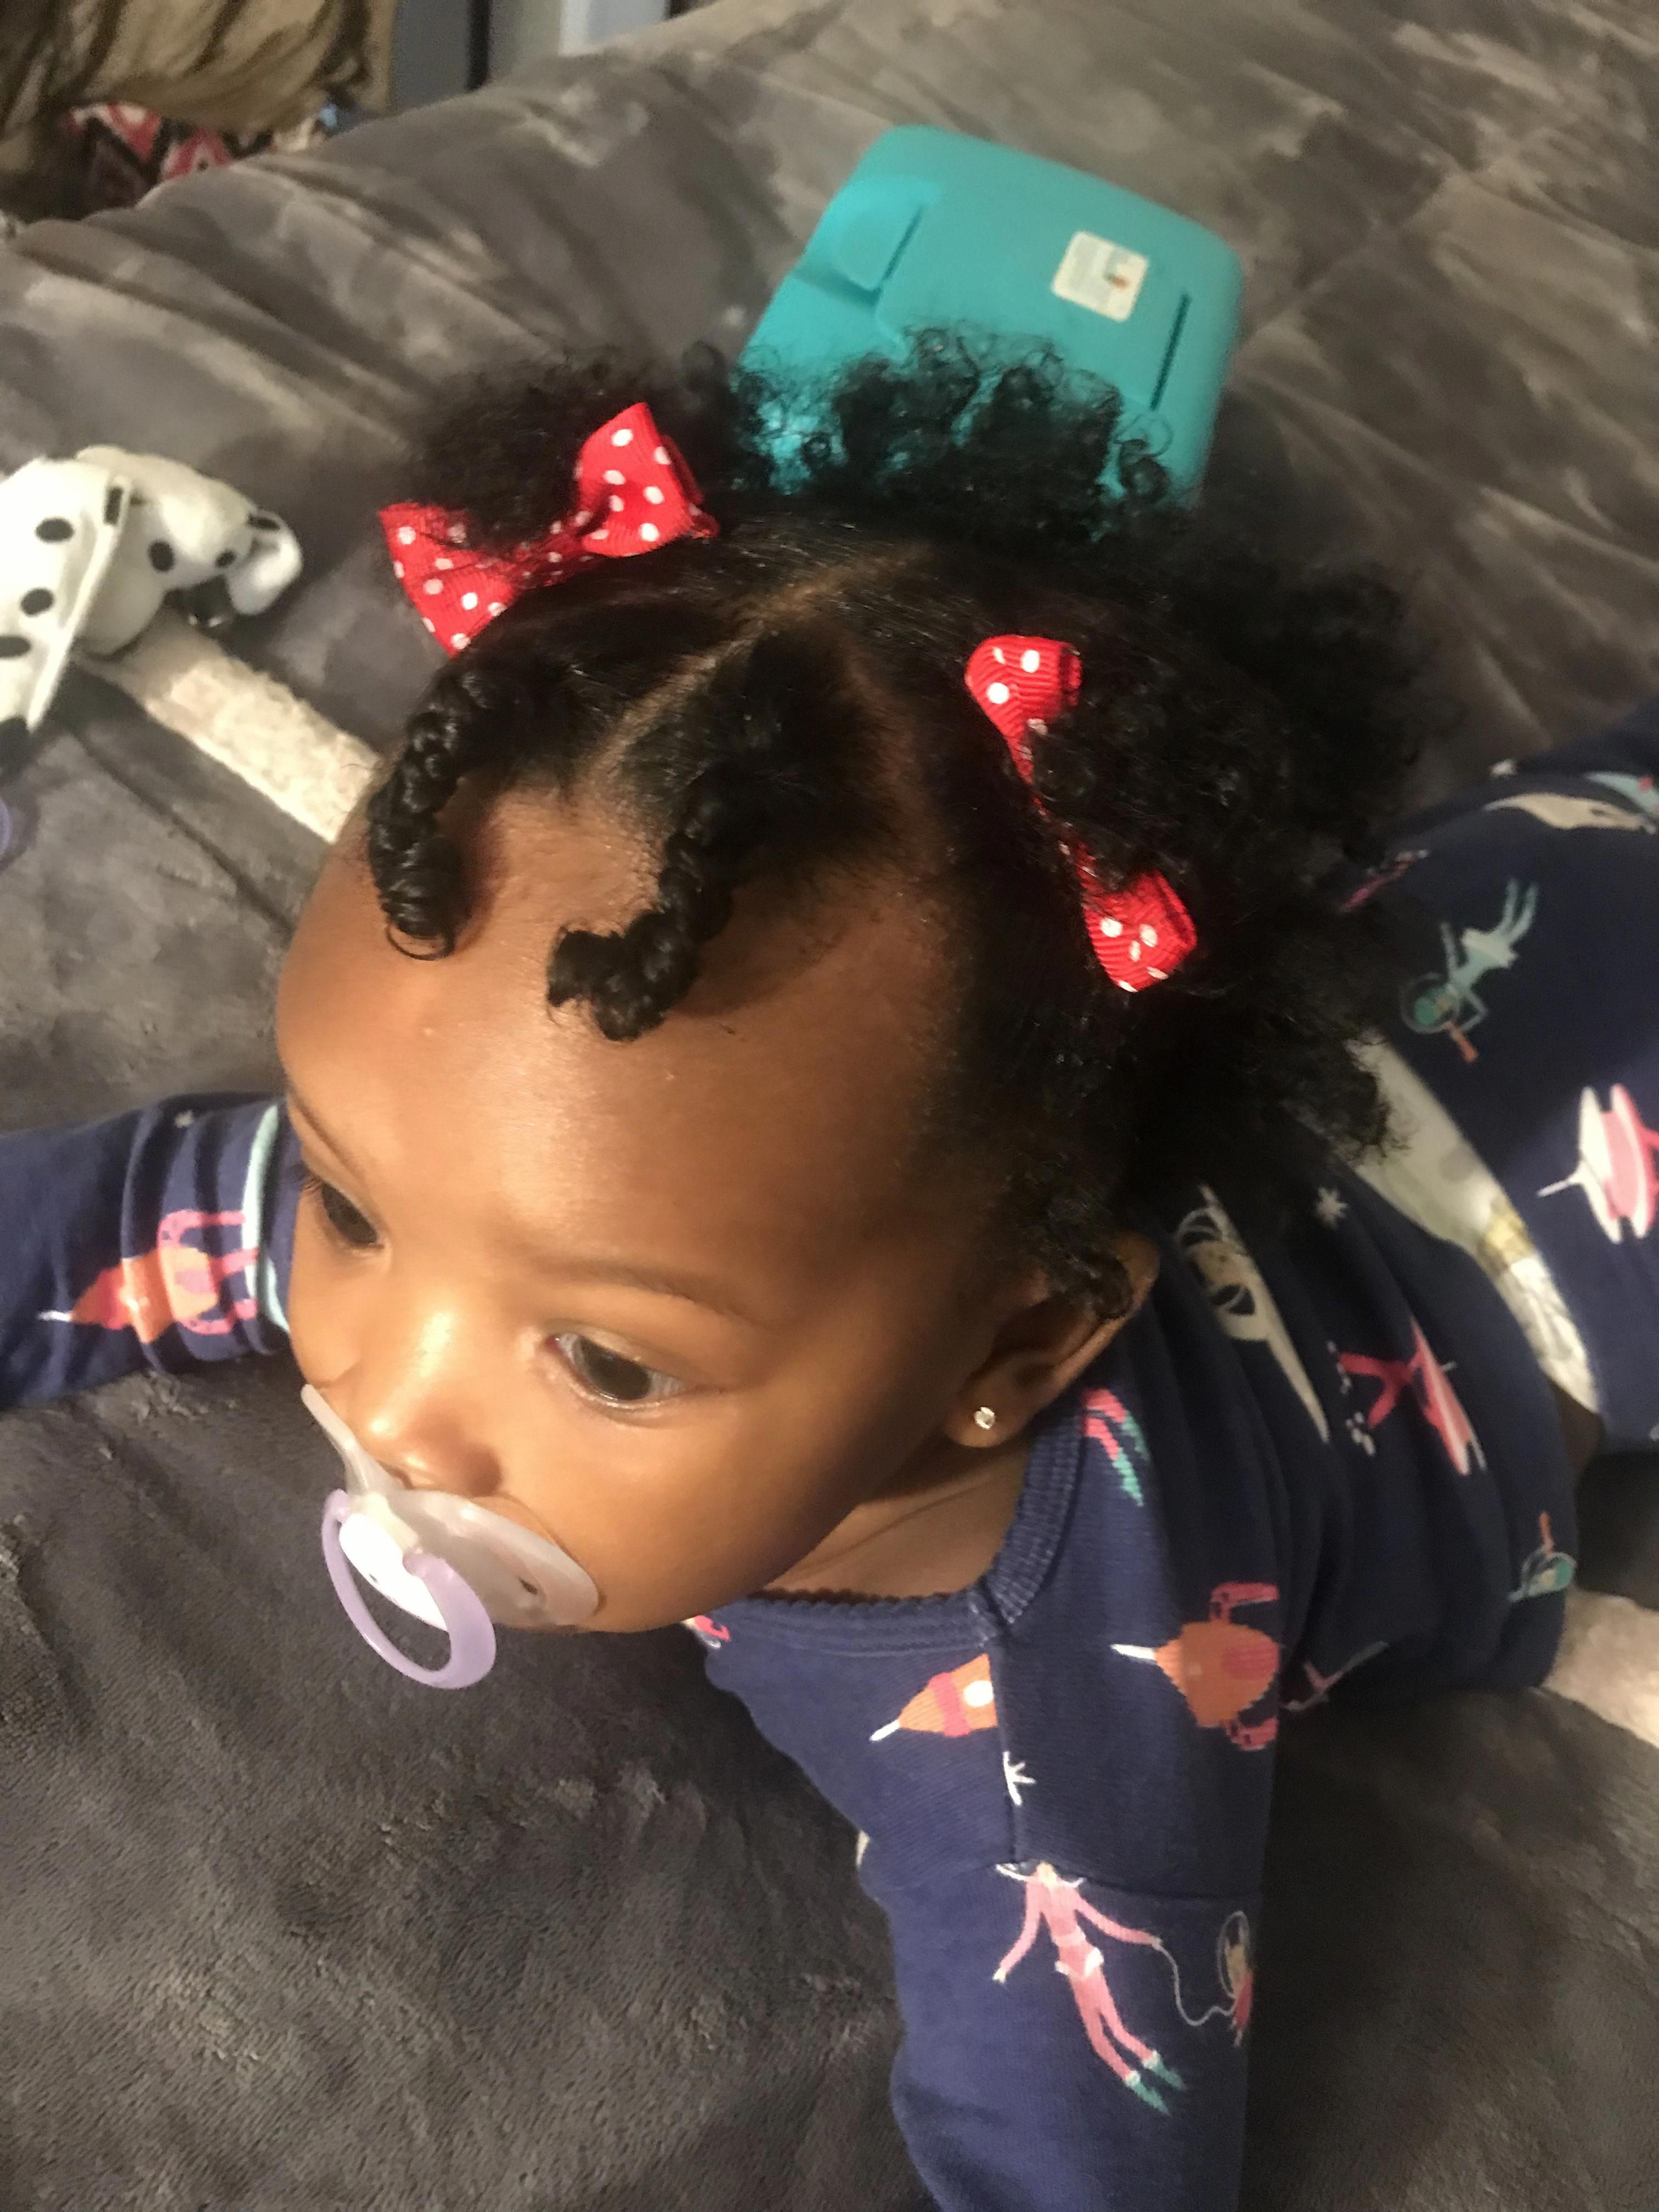 6 Months Old Hairstyles For Babies Blackhairstylesforkids Baby Girl Hairstyles Black Baby Girl Hairstyles Baby Girl Hair